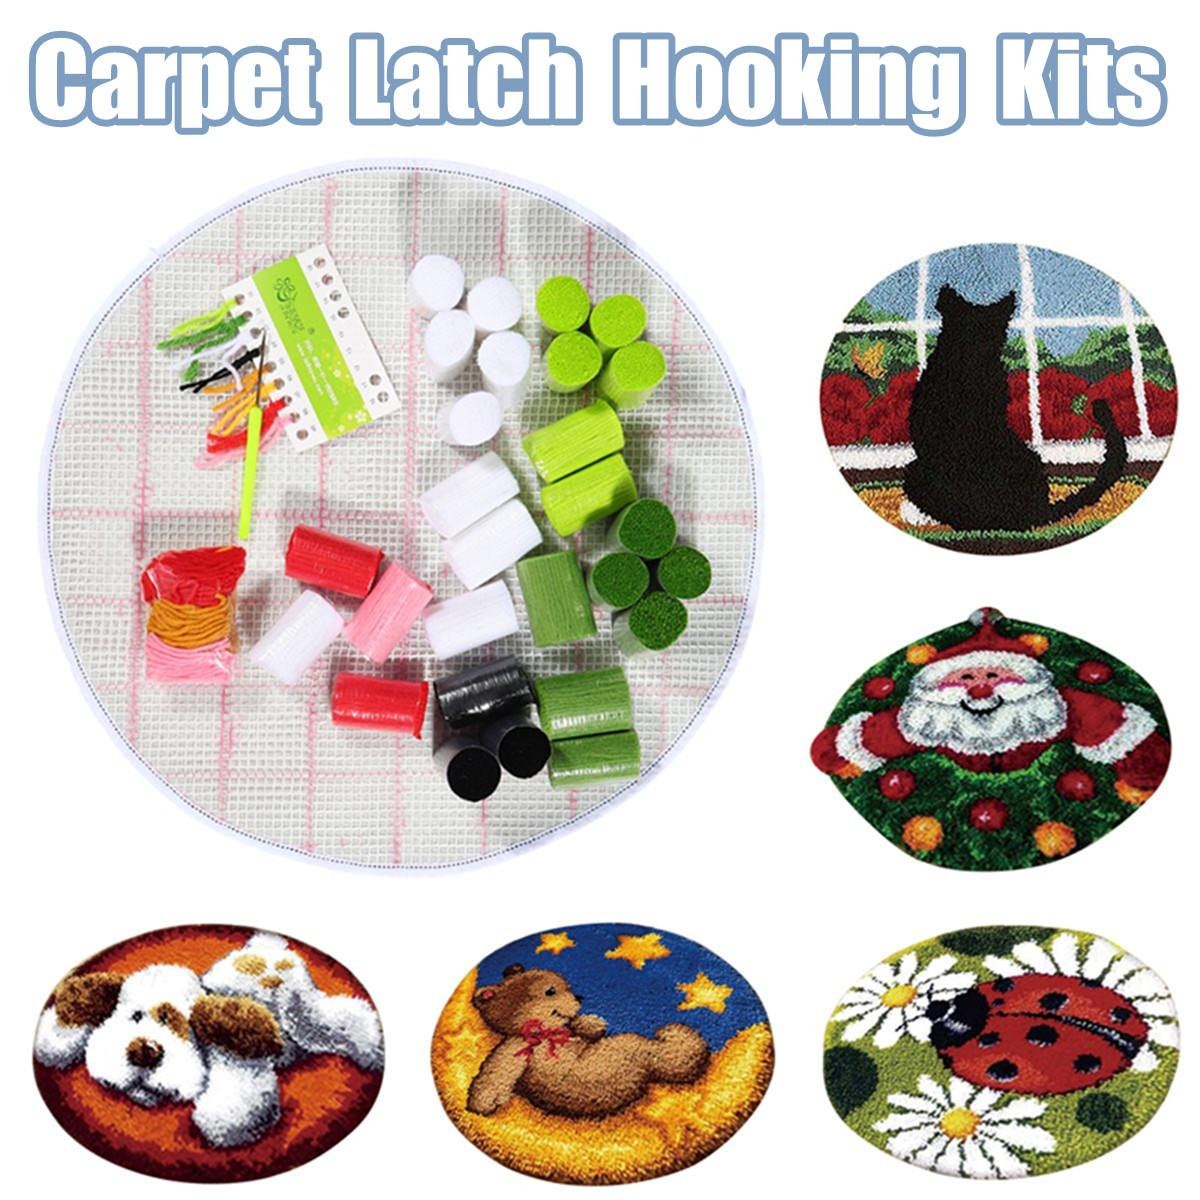 Rug Dogs Embroidery Designs: Santa Claus Dog Needlework Latch Hook Rug Kit Unfinished